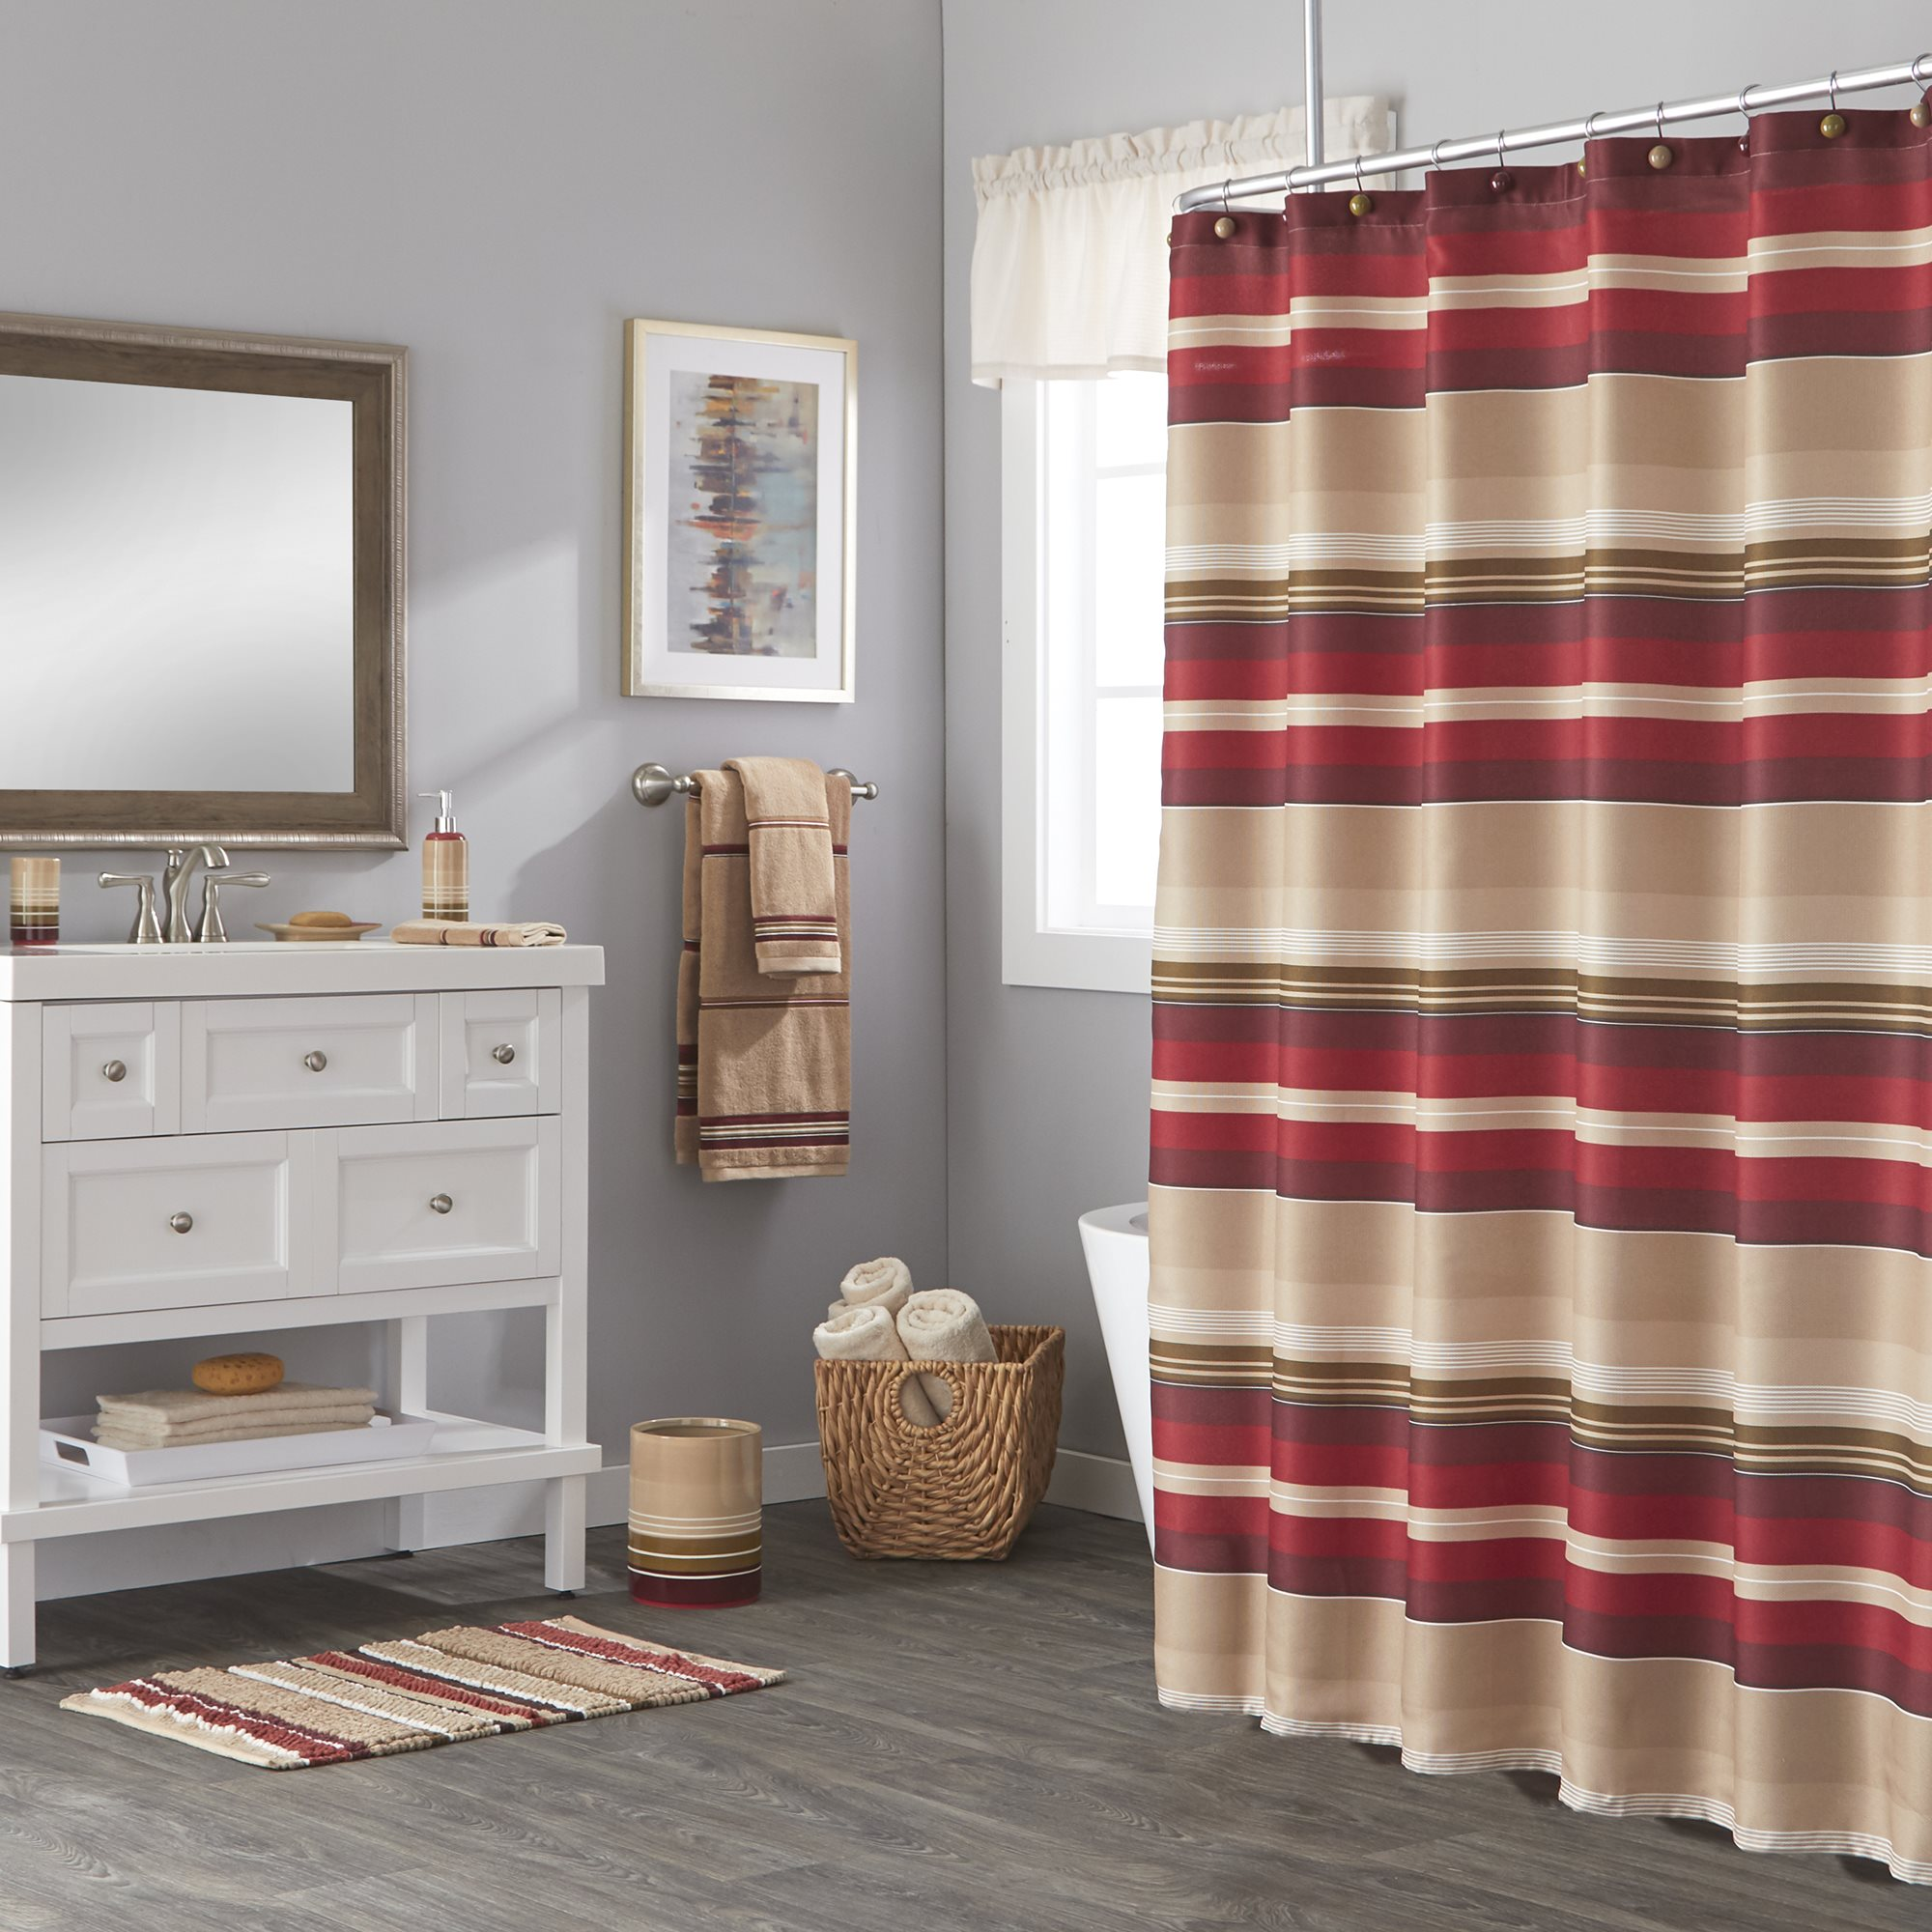 Details About Saturday Knight Ltd Madison Stripe Woven Bath Shower Curtain 72x72 Red